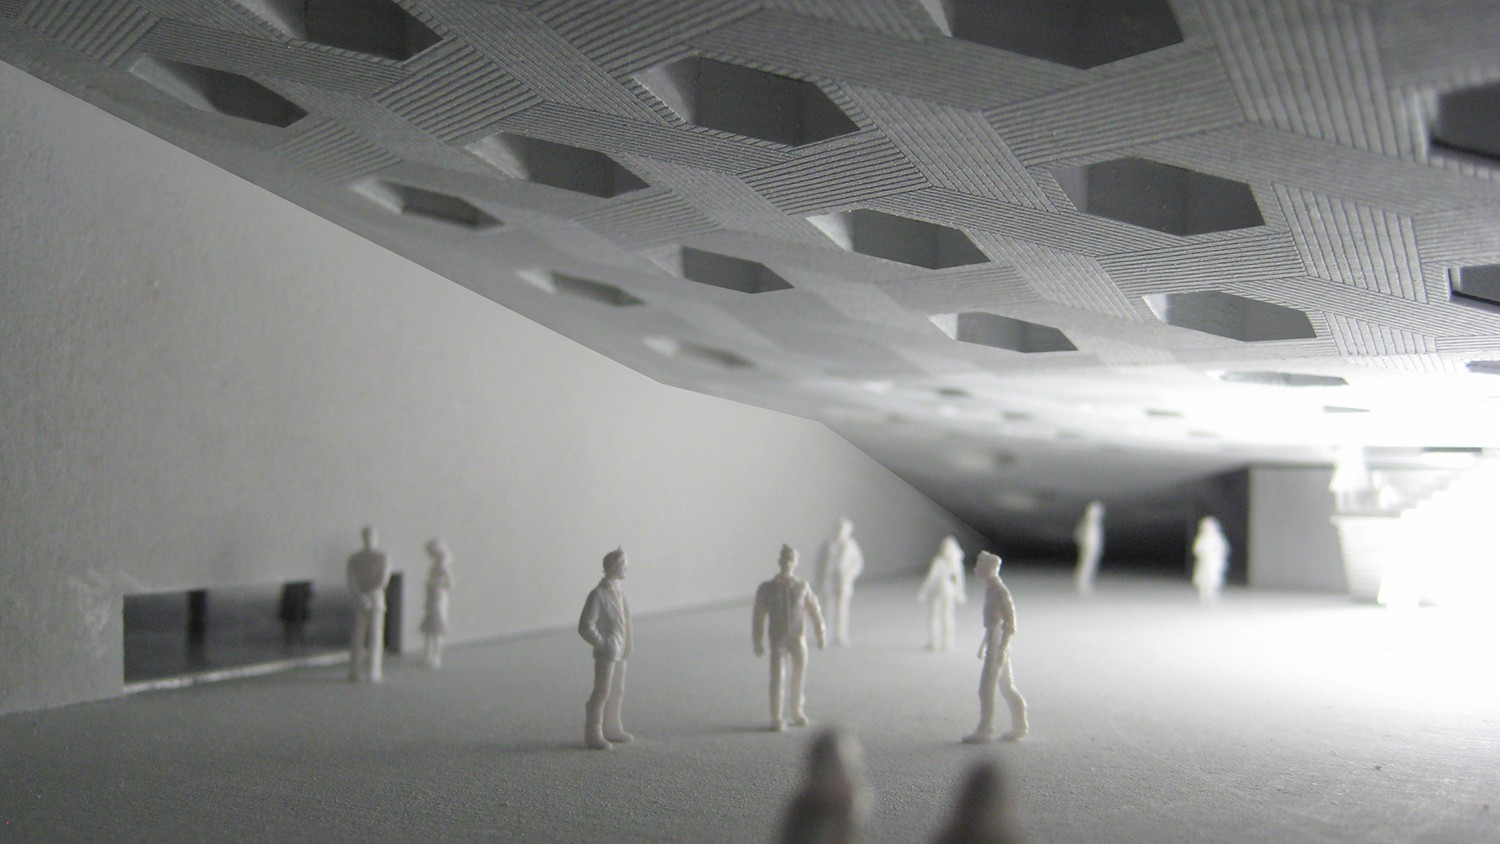 https://stevenholl.sfo2.digitaloceanspaces.com/uploads/projects/project-images/StevenHollArchitects_HangzhouTriax_IMG_5540_WH.jpg